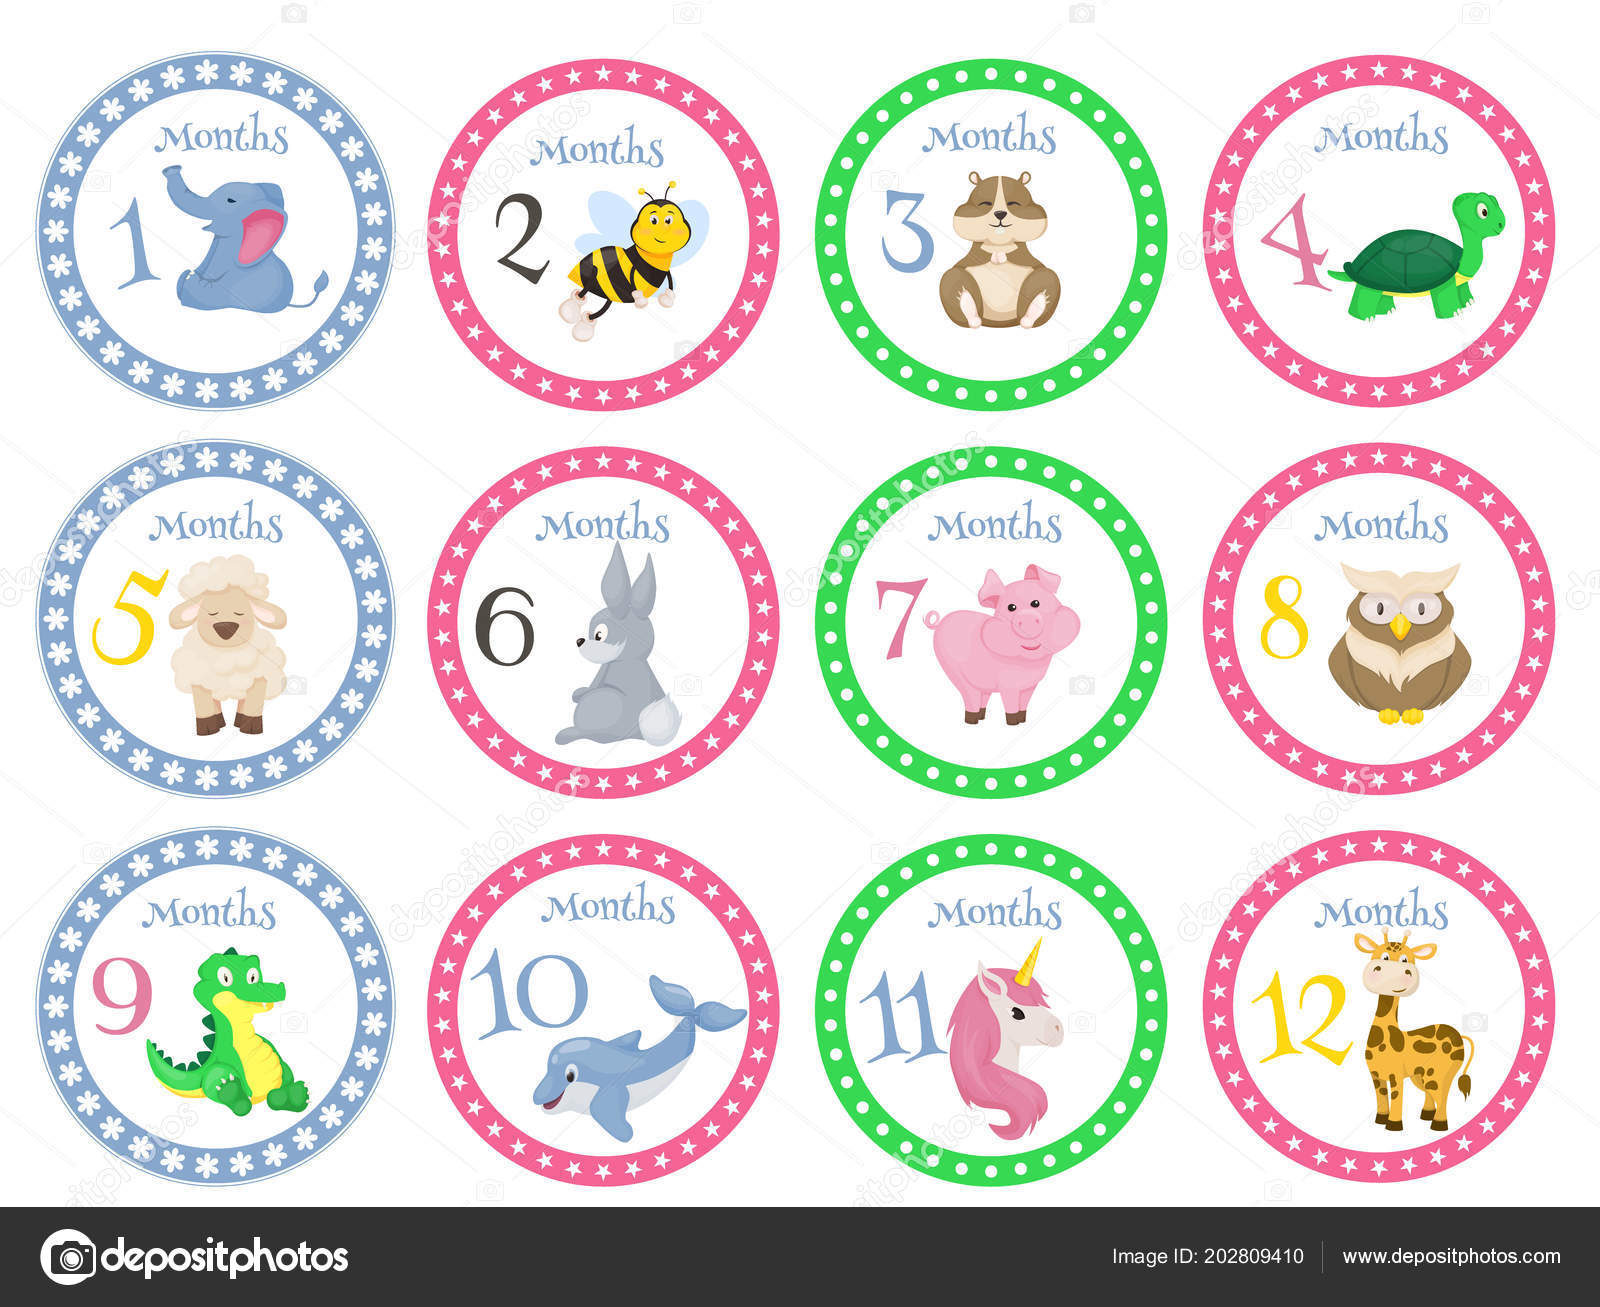 Birthday Month Stickers With Animals For Babies Vector Illustration